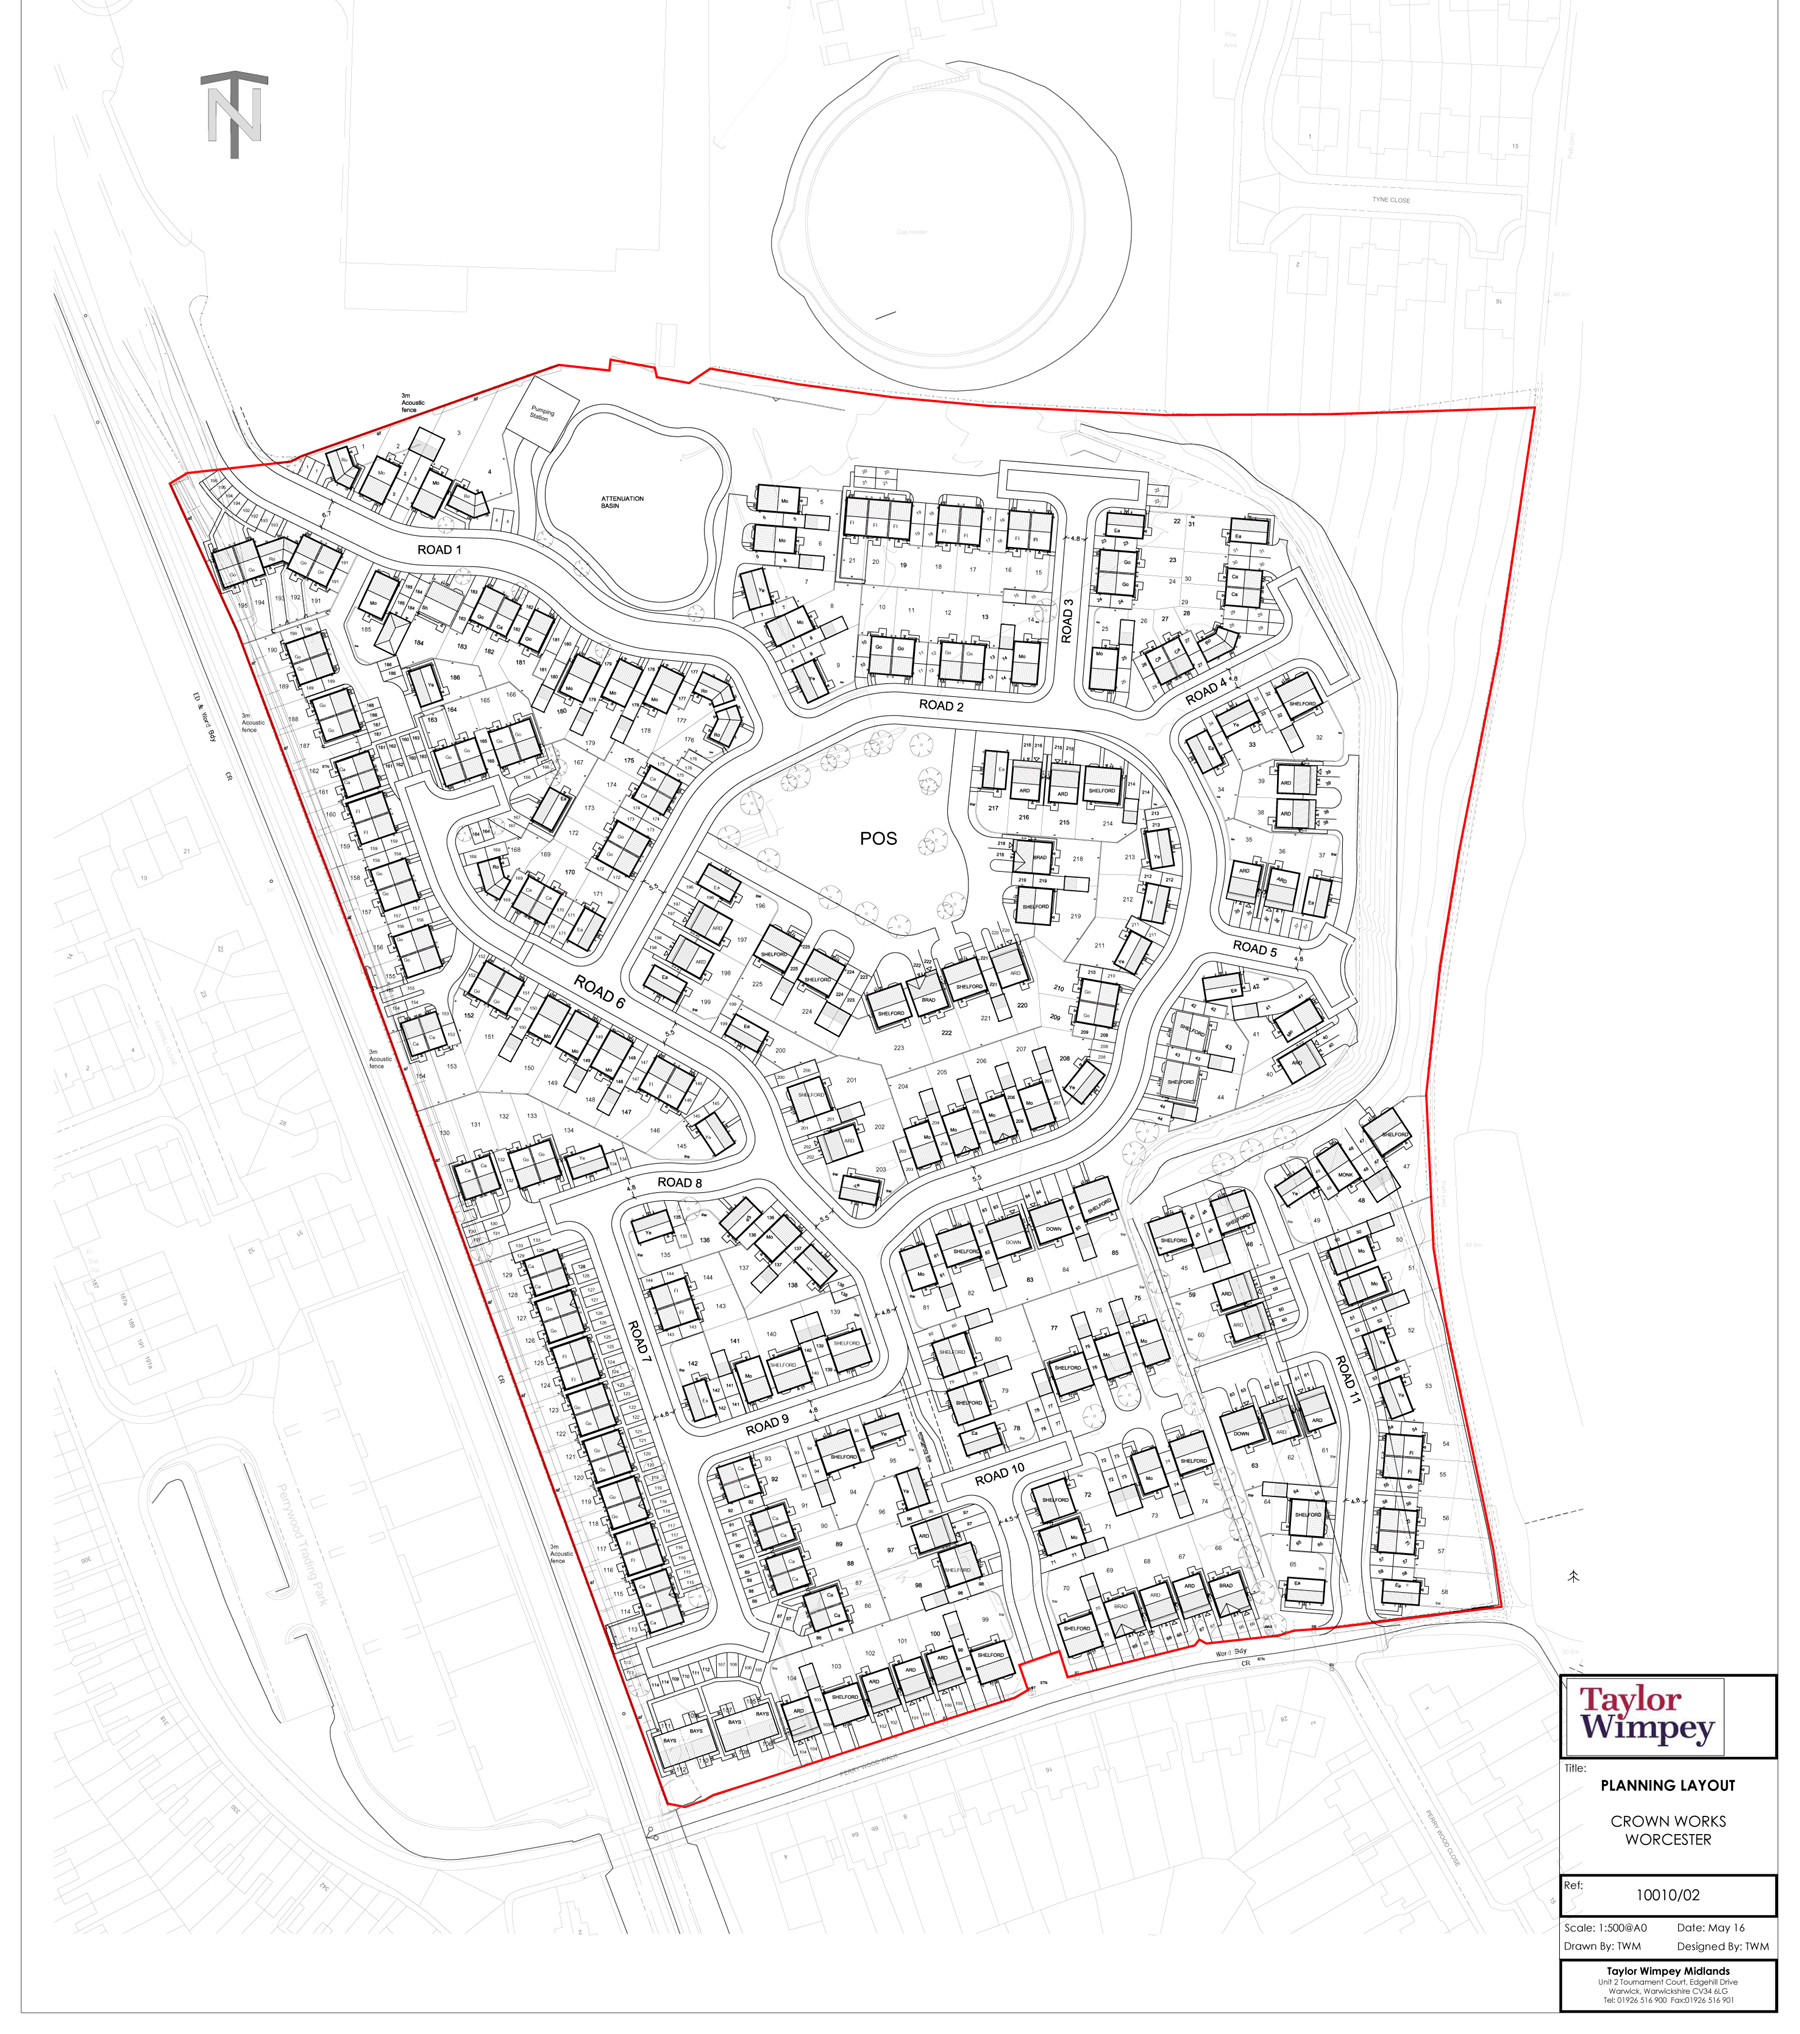 1001001 Perry Wood Planning Layout0109